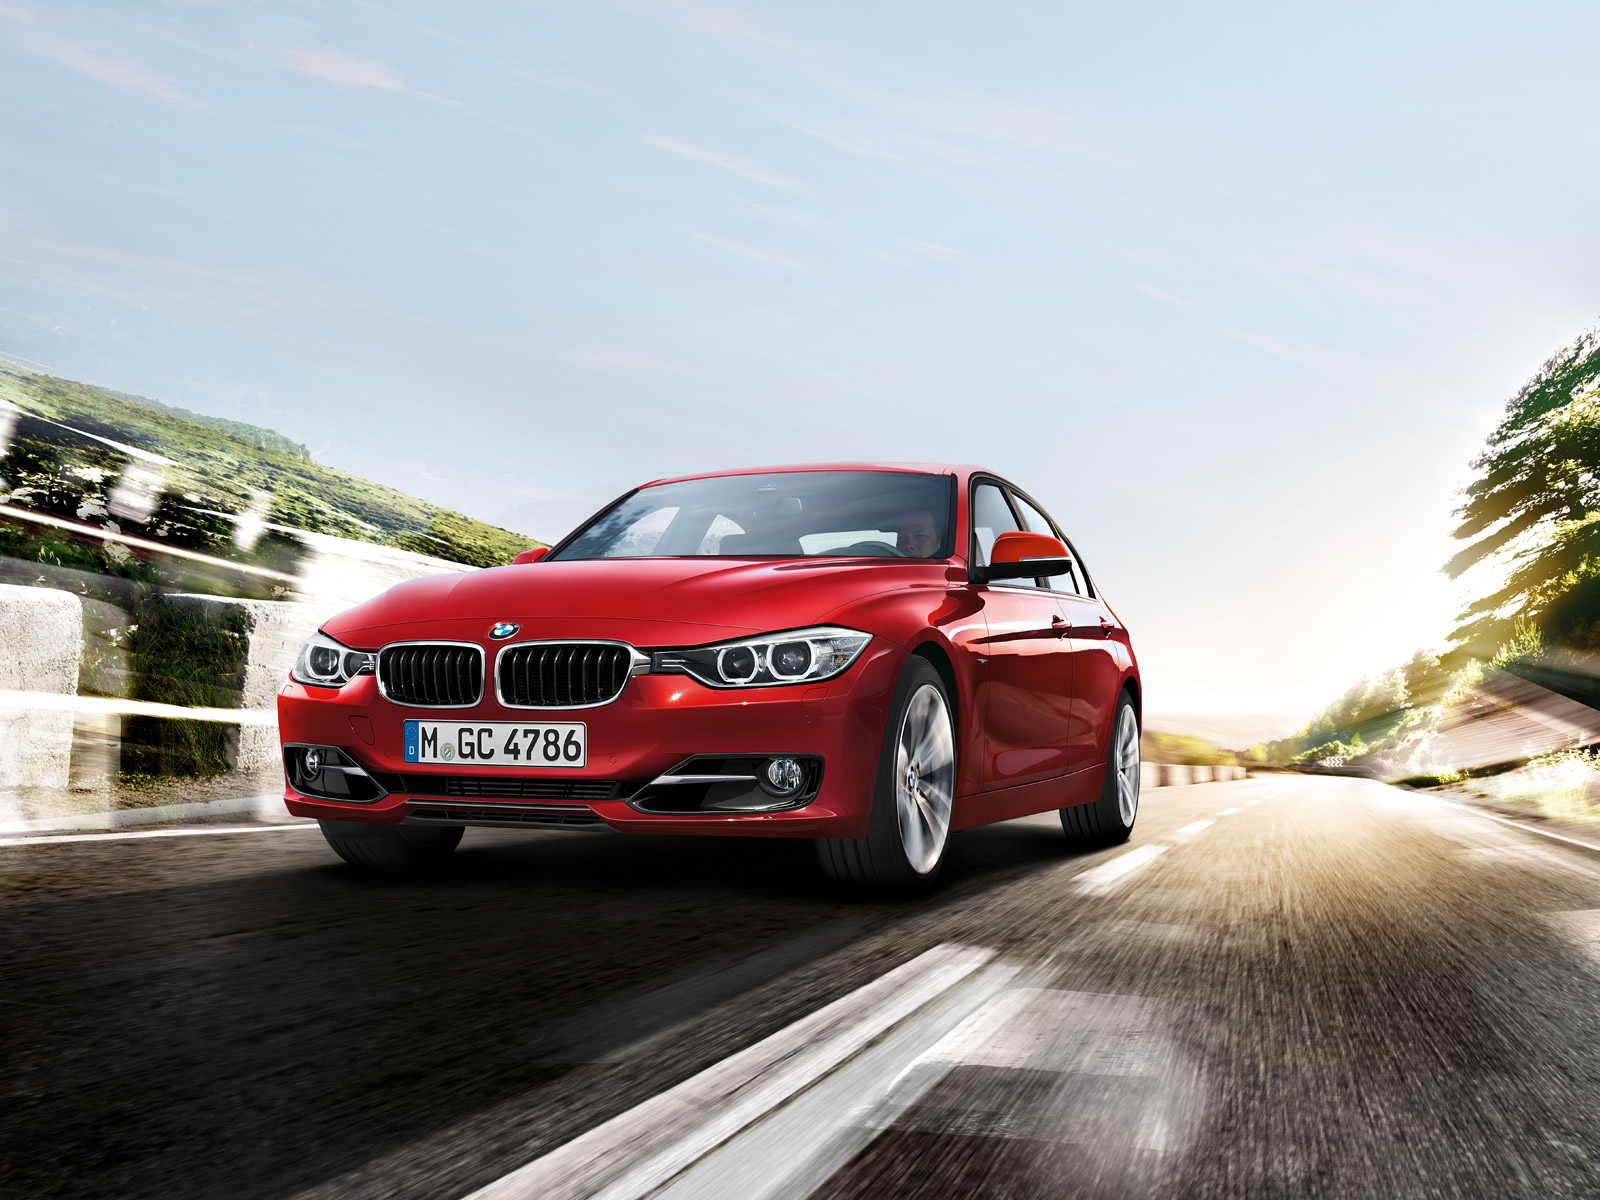 BMW_3series_wallpaper_11_1600